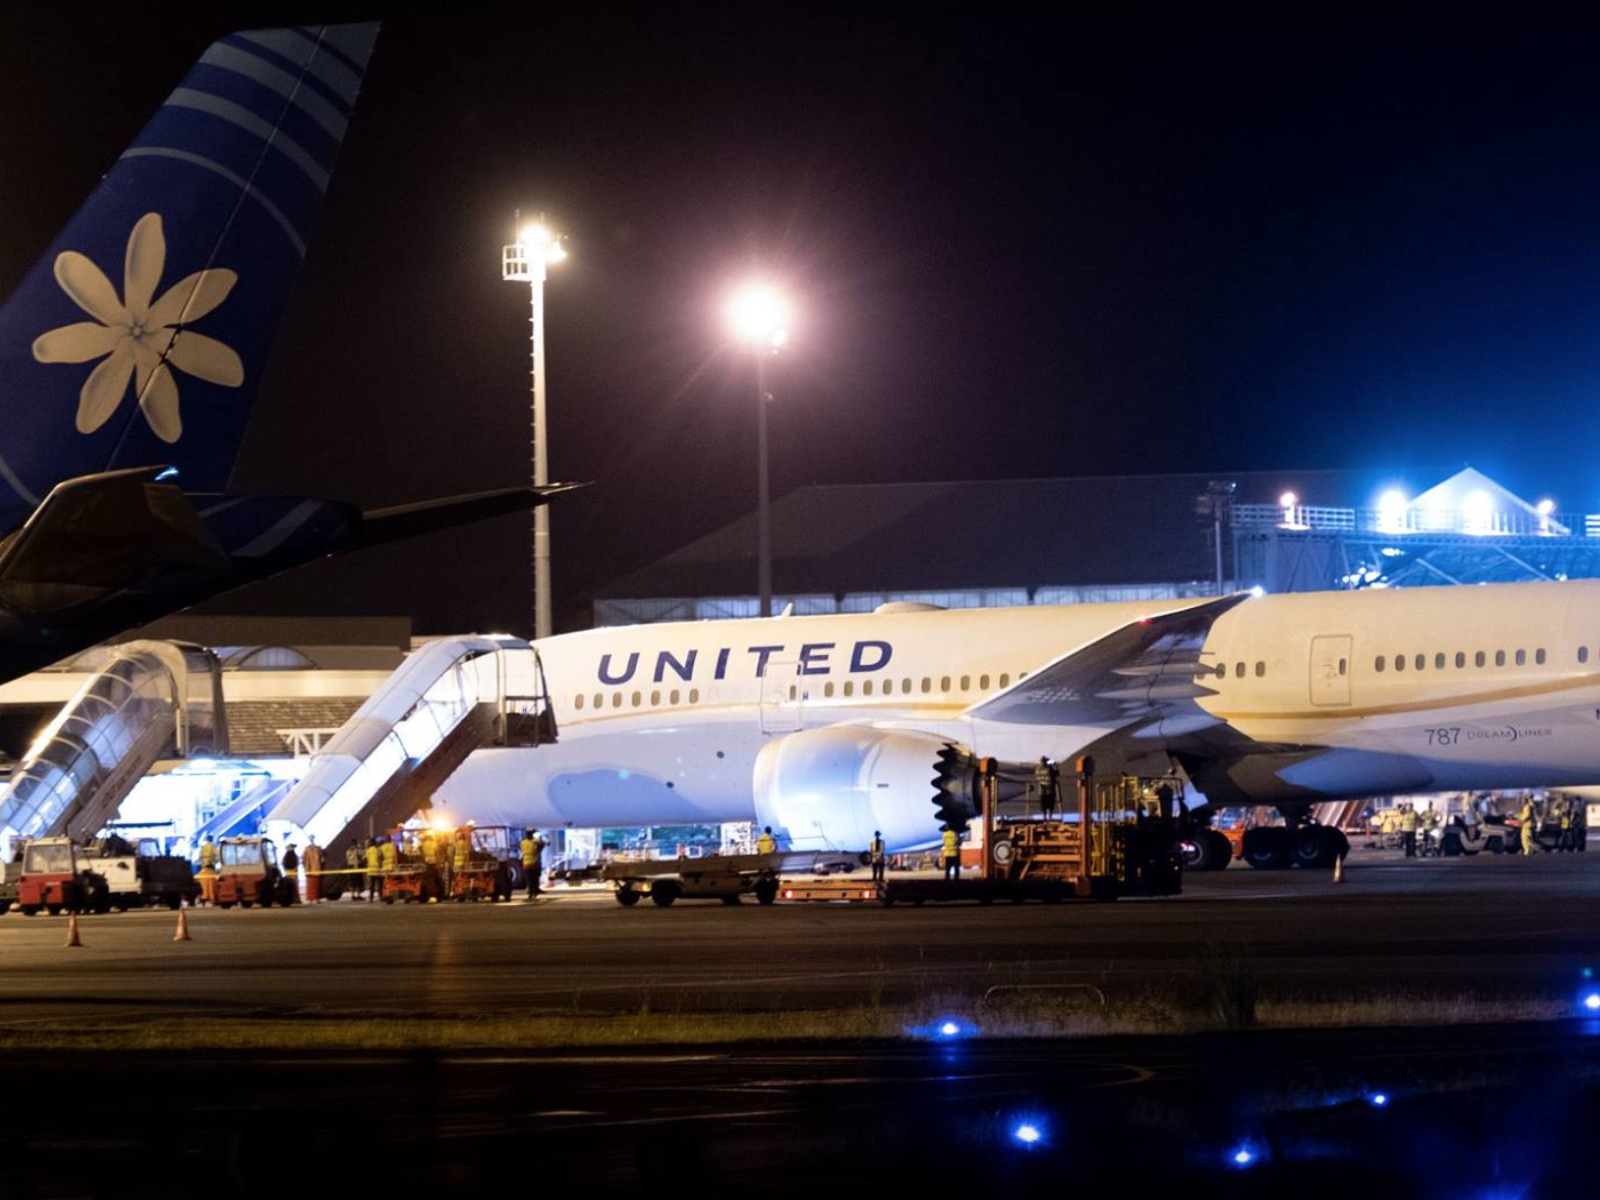 Un 787-800 d'United Airlines, à Tahiti Faa'a mardi 30 octobre © Christopher Liau - PYF Spotters